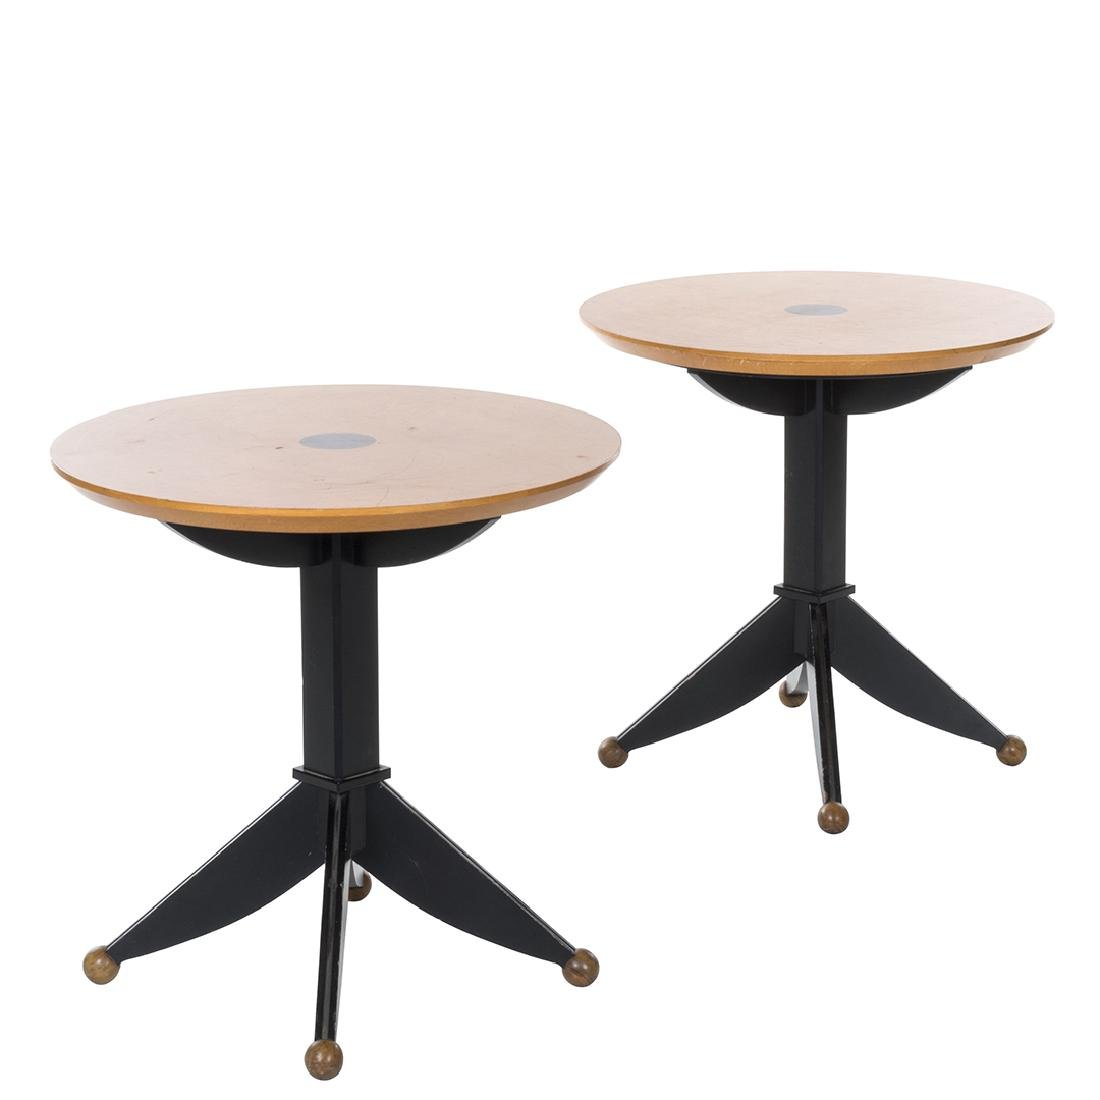 Italian side tables (2)